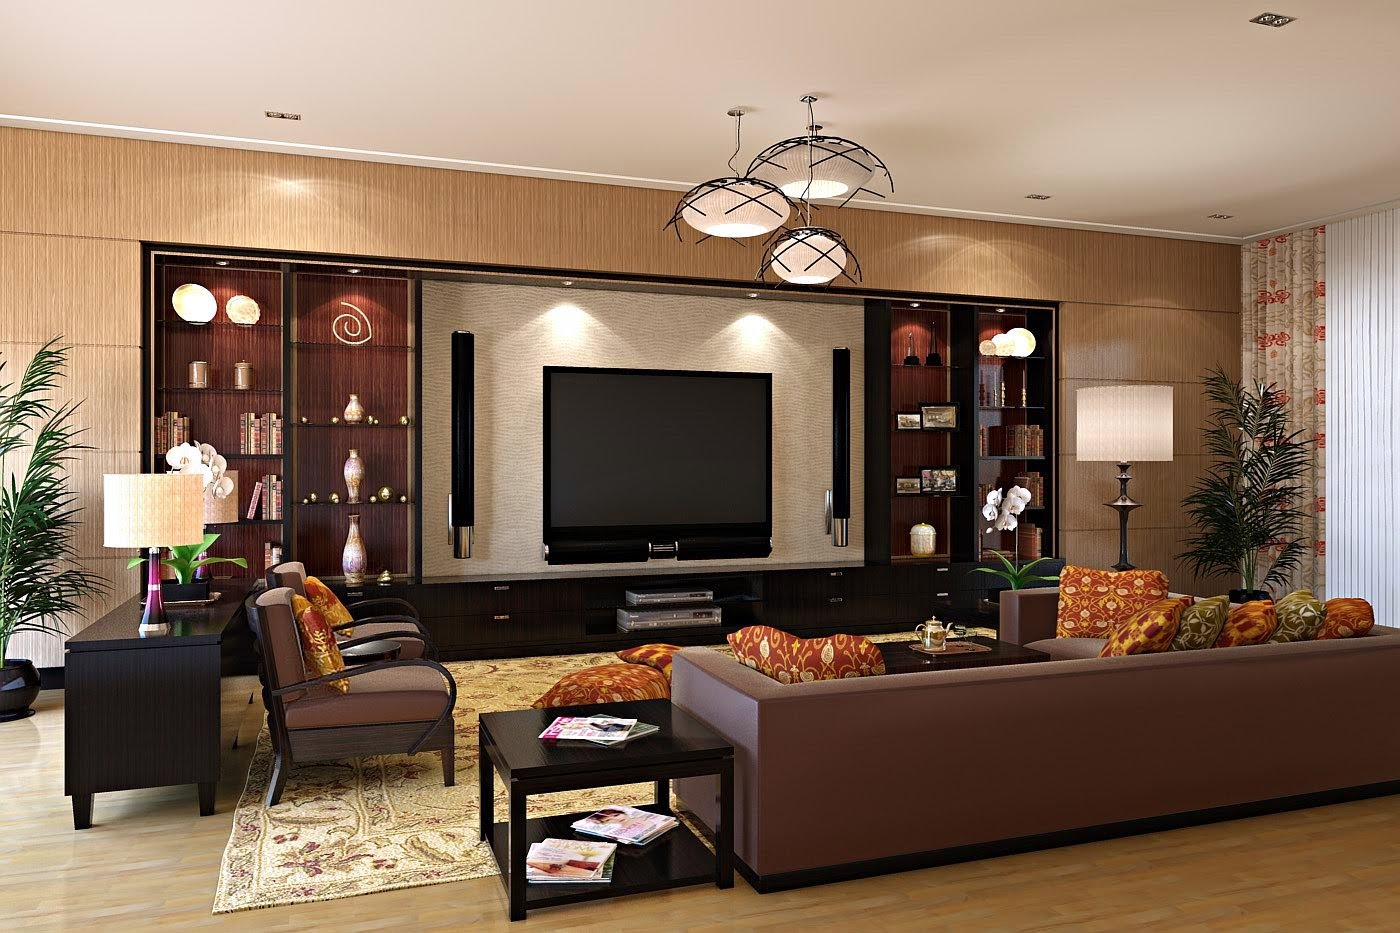 20 Modern TV Unit Design Ideas For Bedroom & Living Room